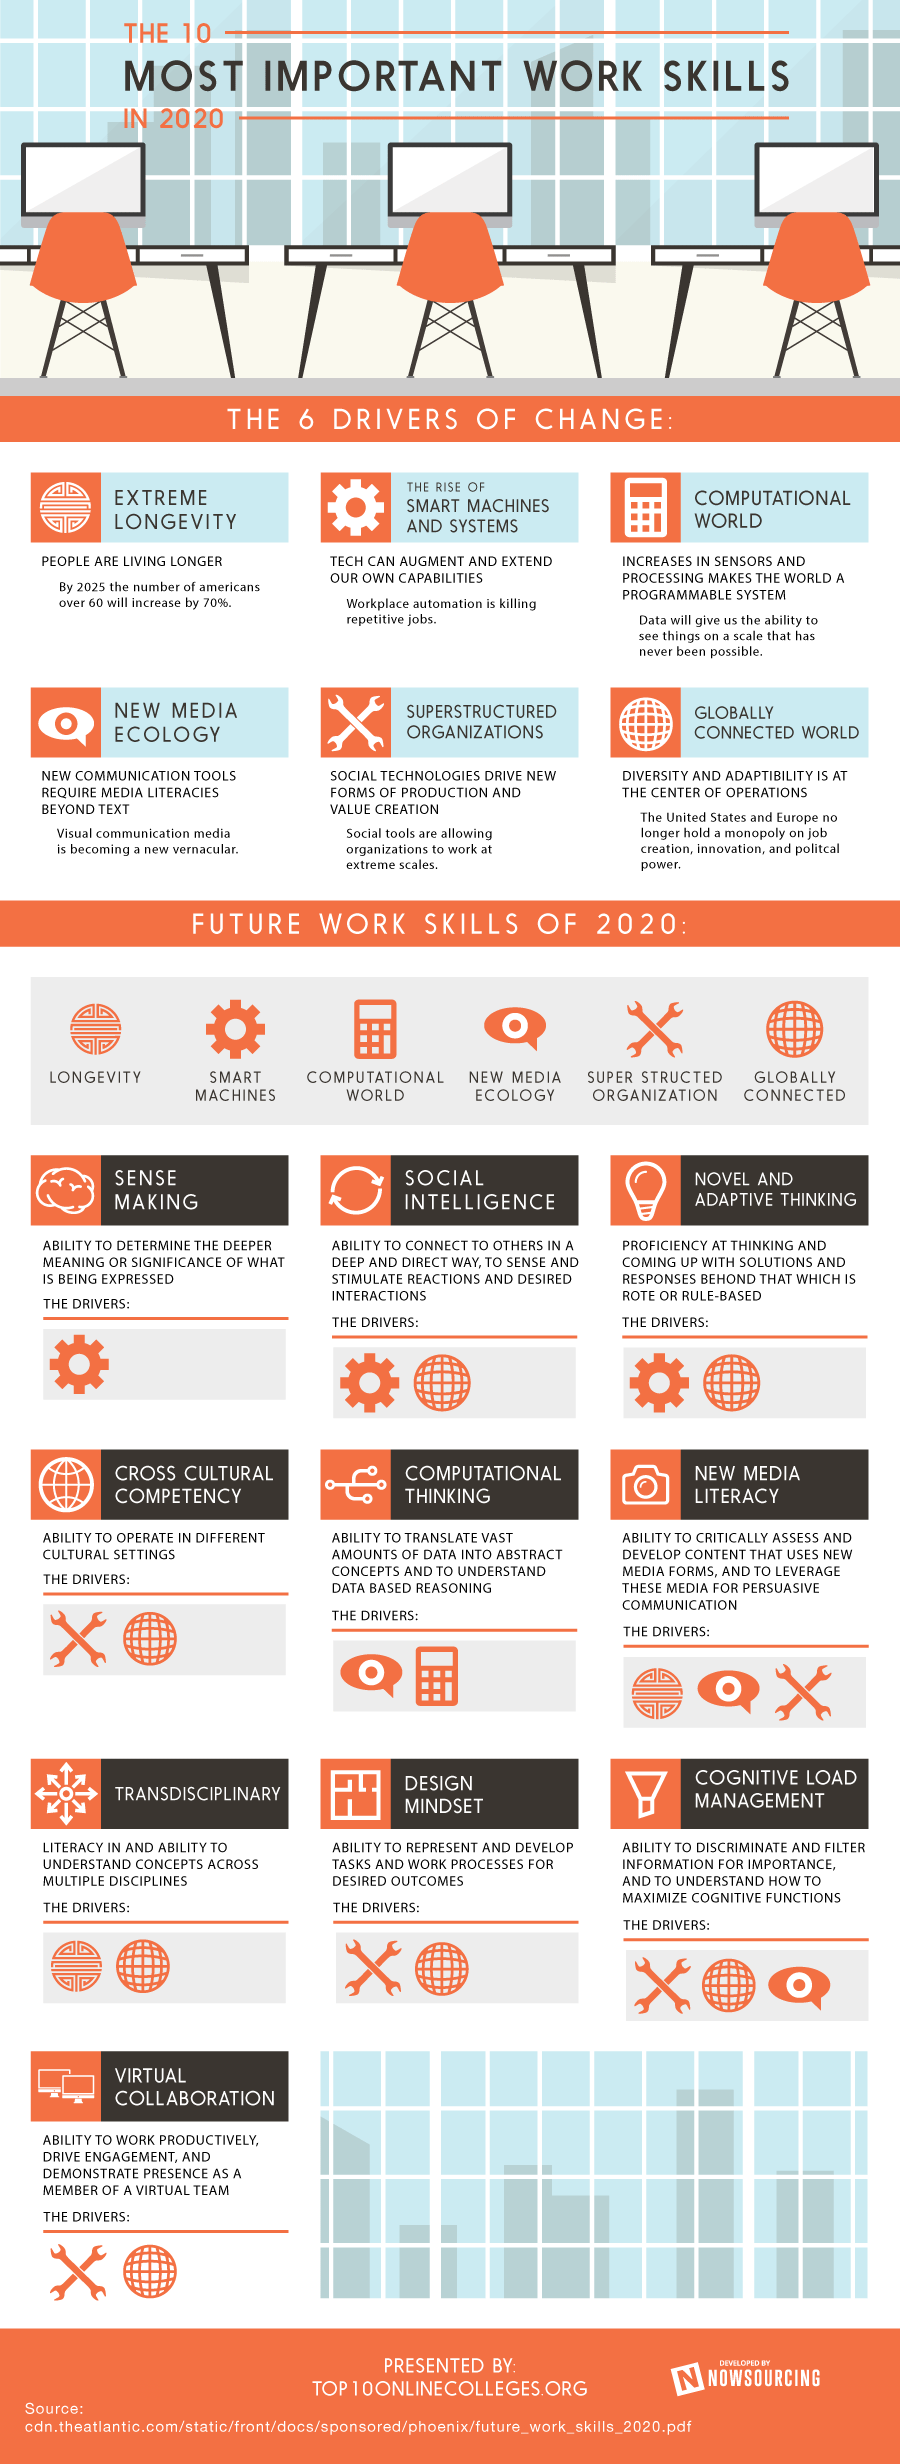 Top 10 Work Skills You'll Need in 2020 (Infographic) Image